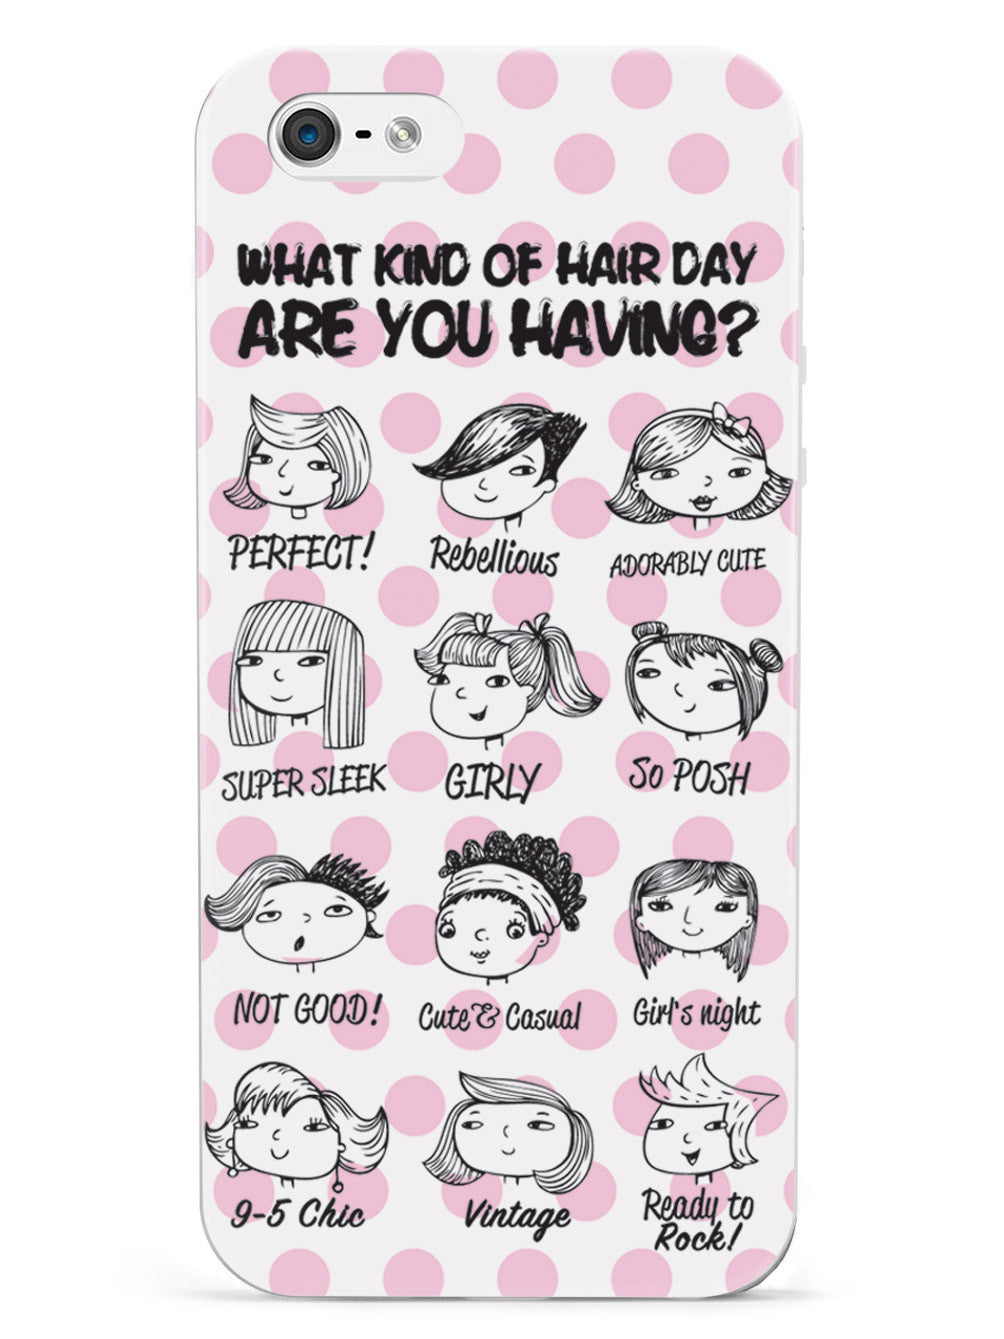 Hair Day Guide Hairstylist Barber Case